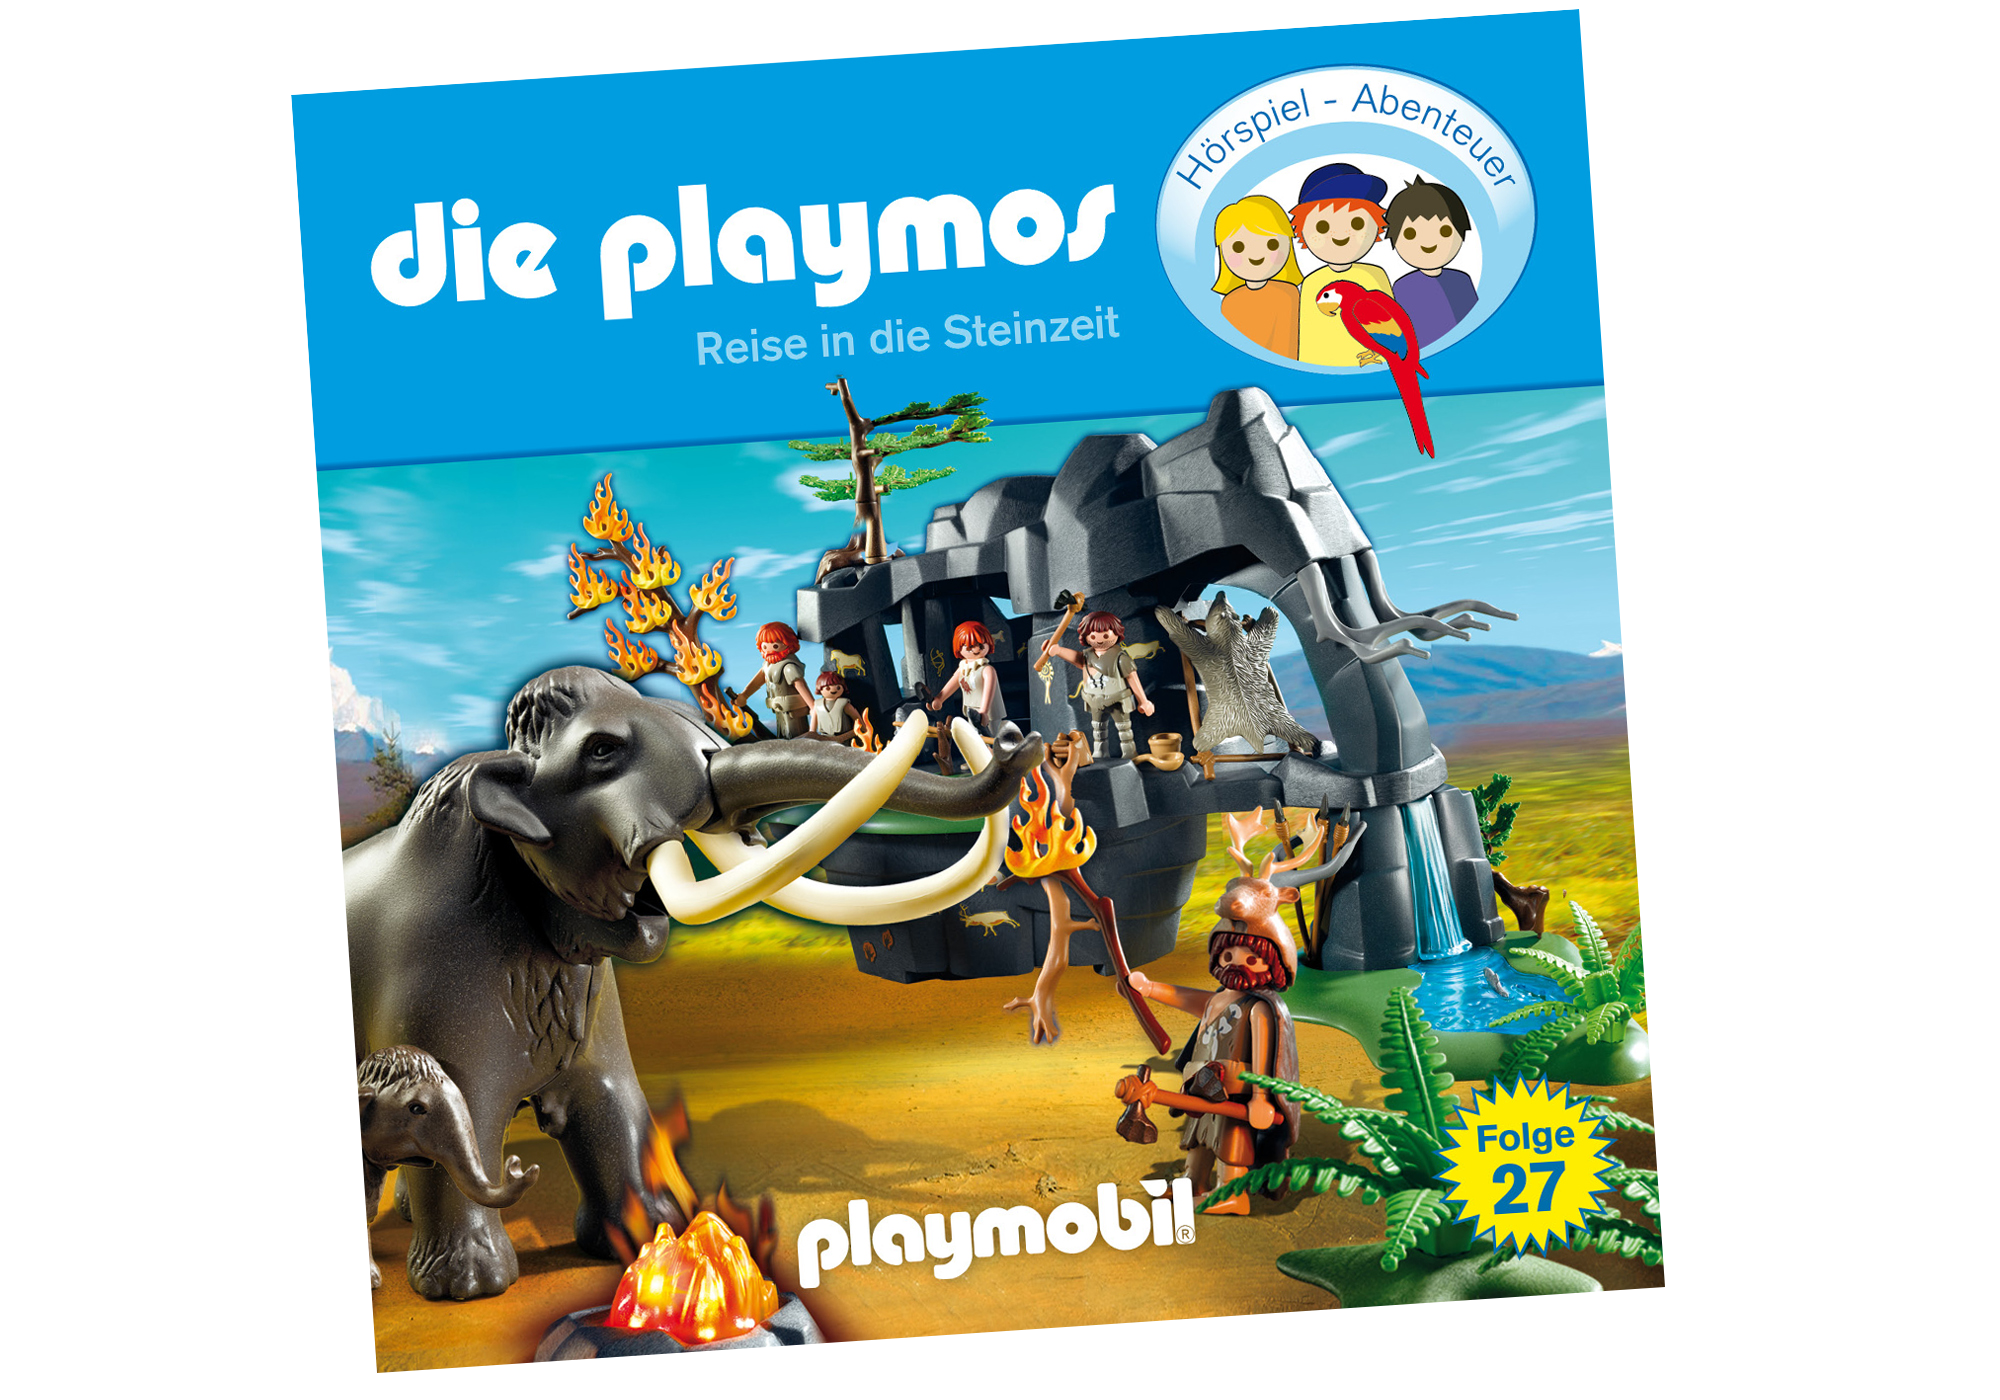 http://media.playmobil.com/i/playmobil/80343_product_detail